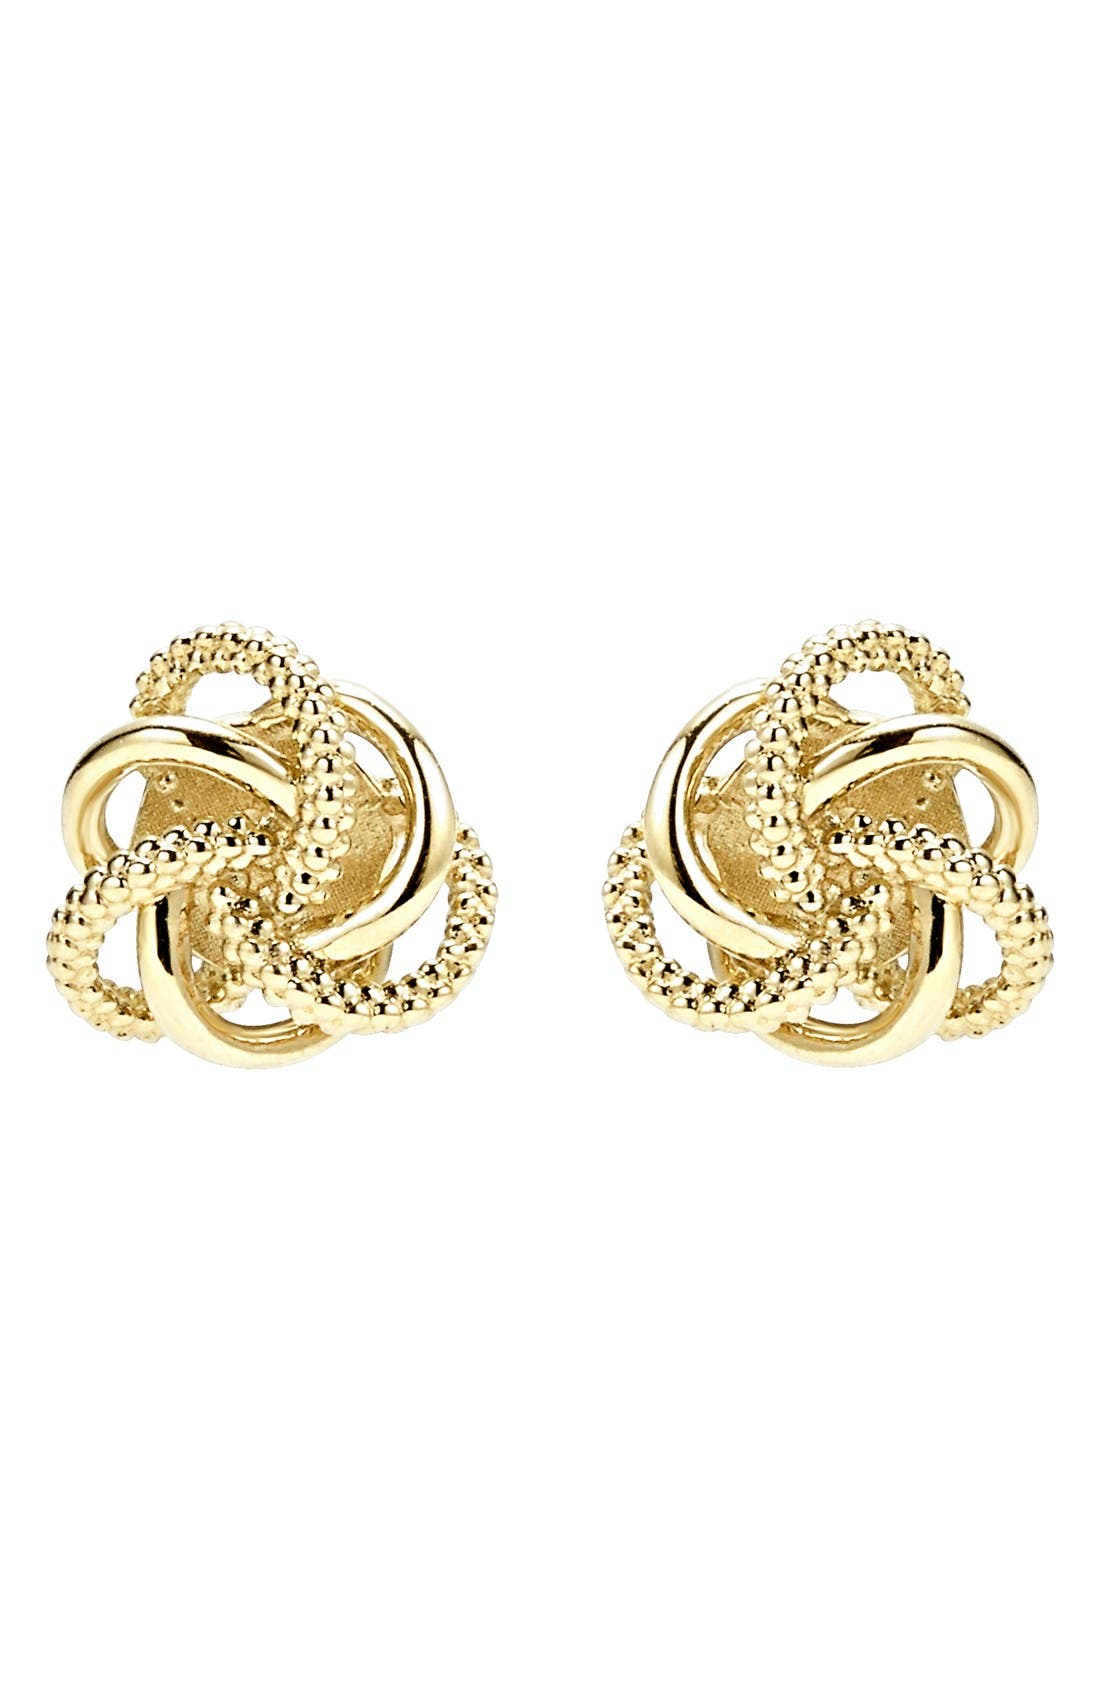 Alternate Image 2  - Lagos 'Love Knot' Stud Earrings